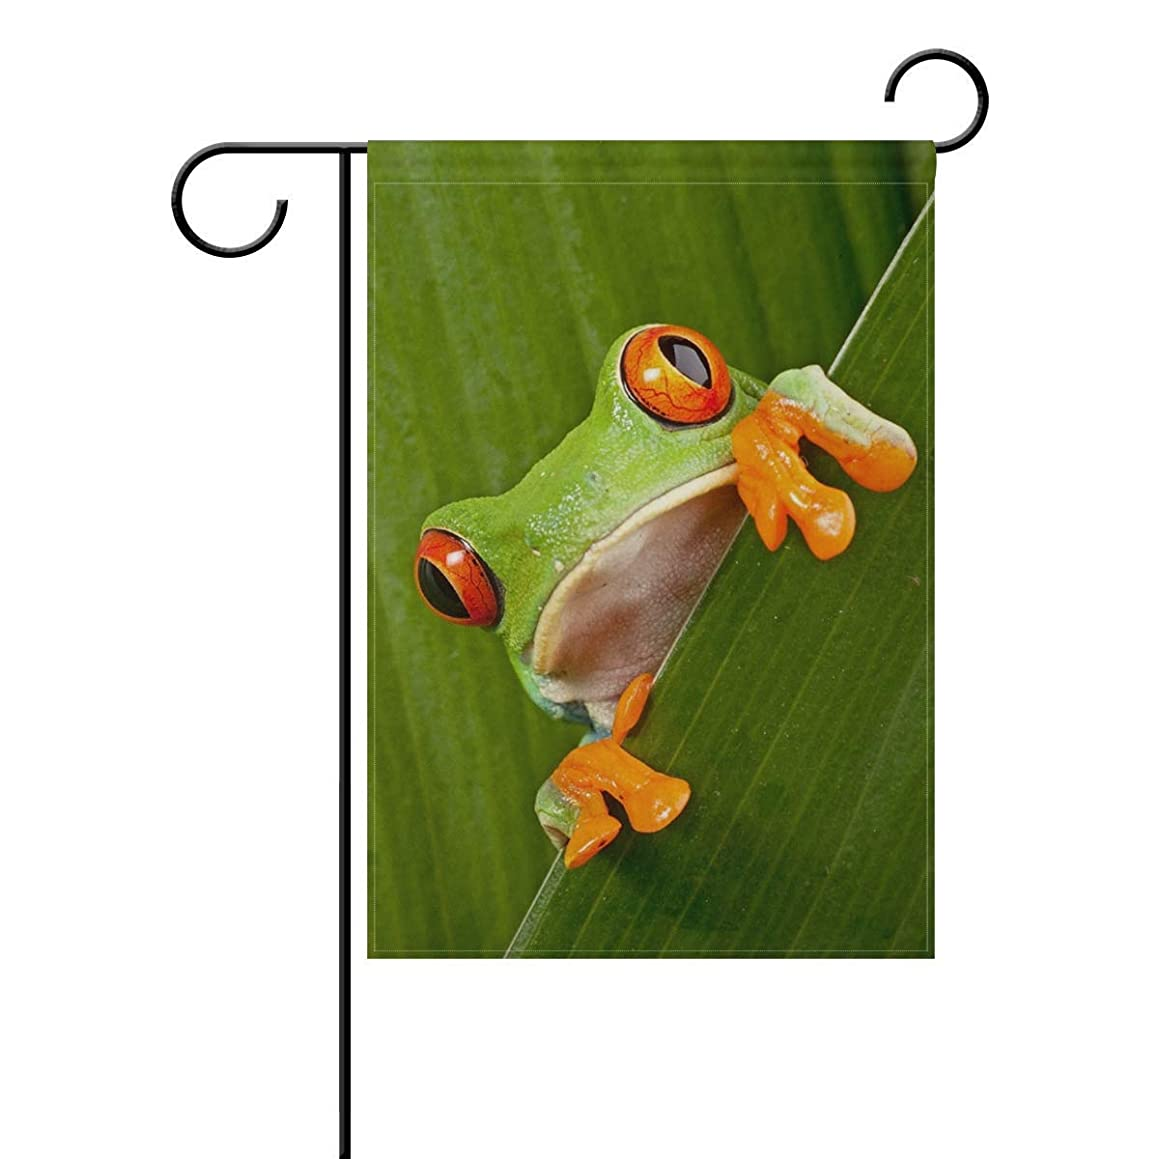 lychi Red Eyed Tree Frog Green Leafs Polyester Garden Flag Banner 12 x 18 Inch for Outdoor Home Garden Flower Pot Decor